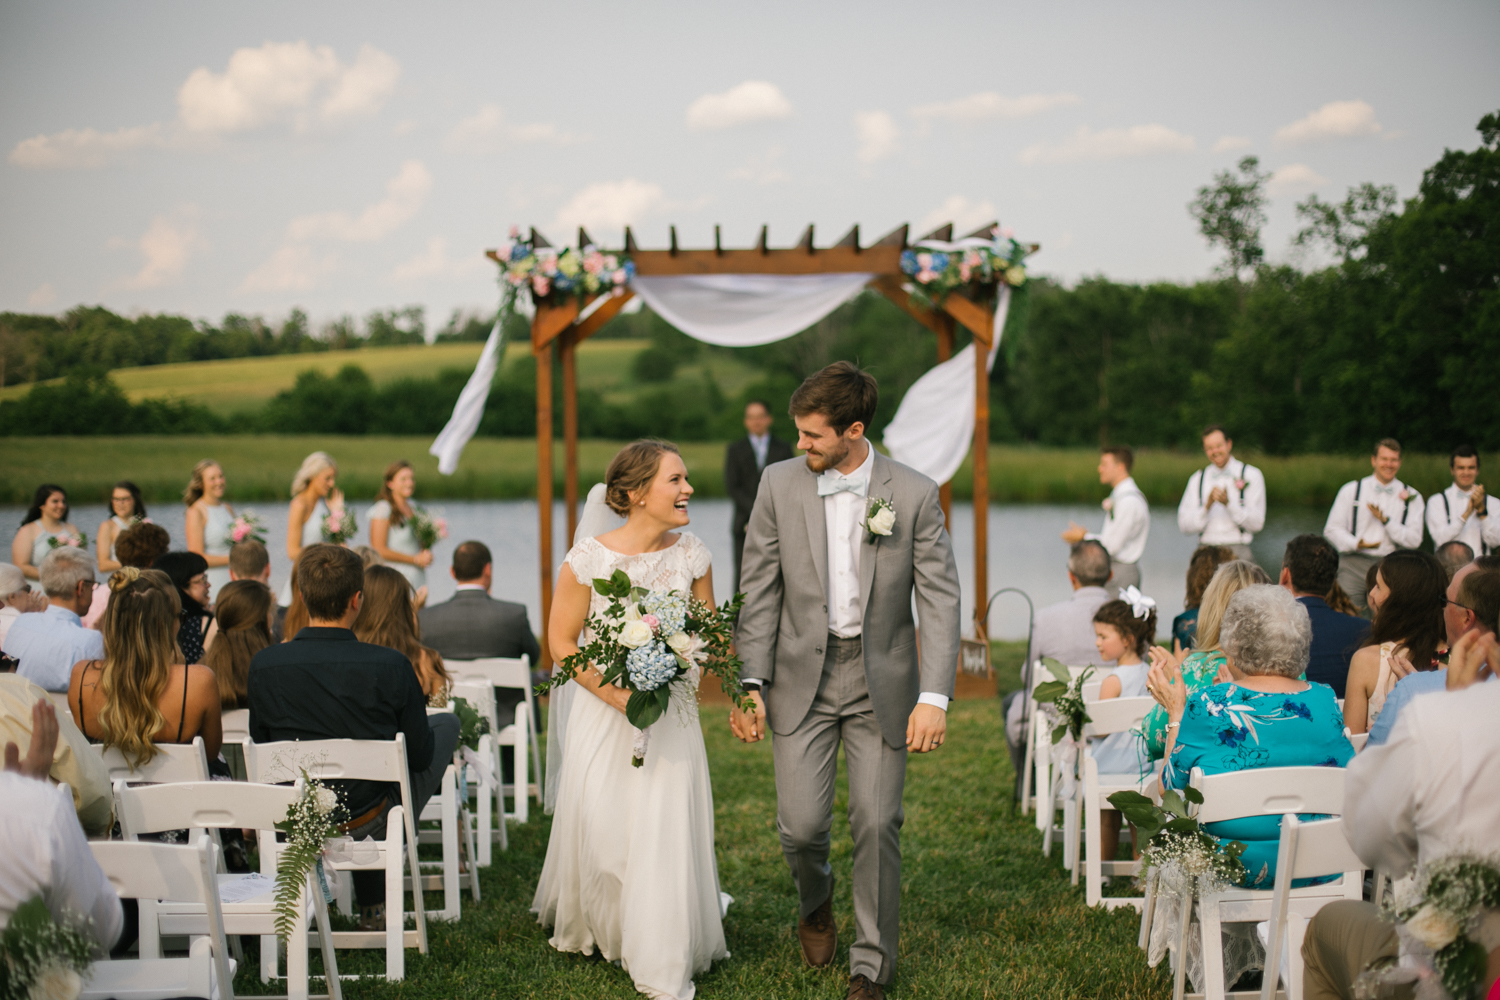 2019.06.01_CraskWedding_Starks-114.jpg